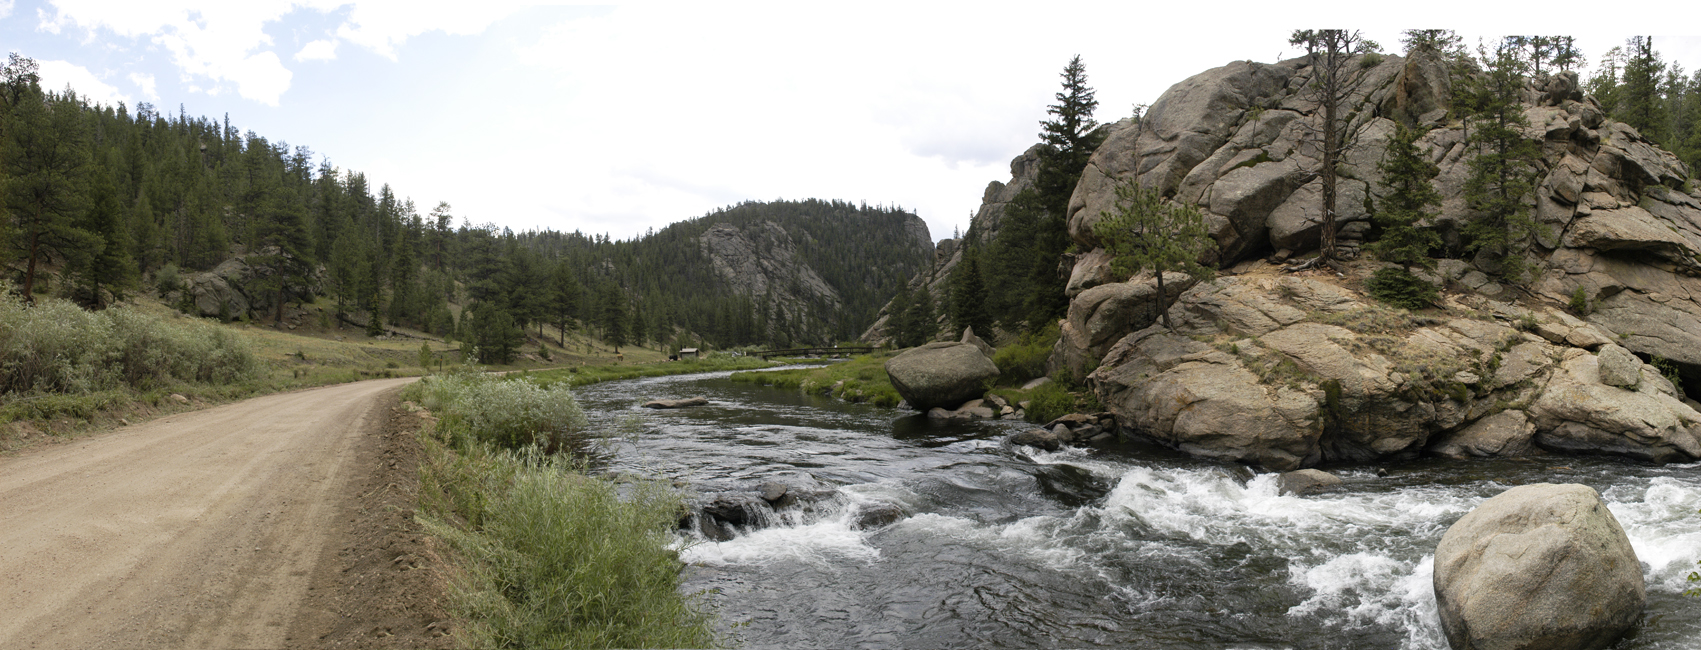 11 mile canyon 11 mile campground colorado locations for 11 mile canyon fishing